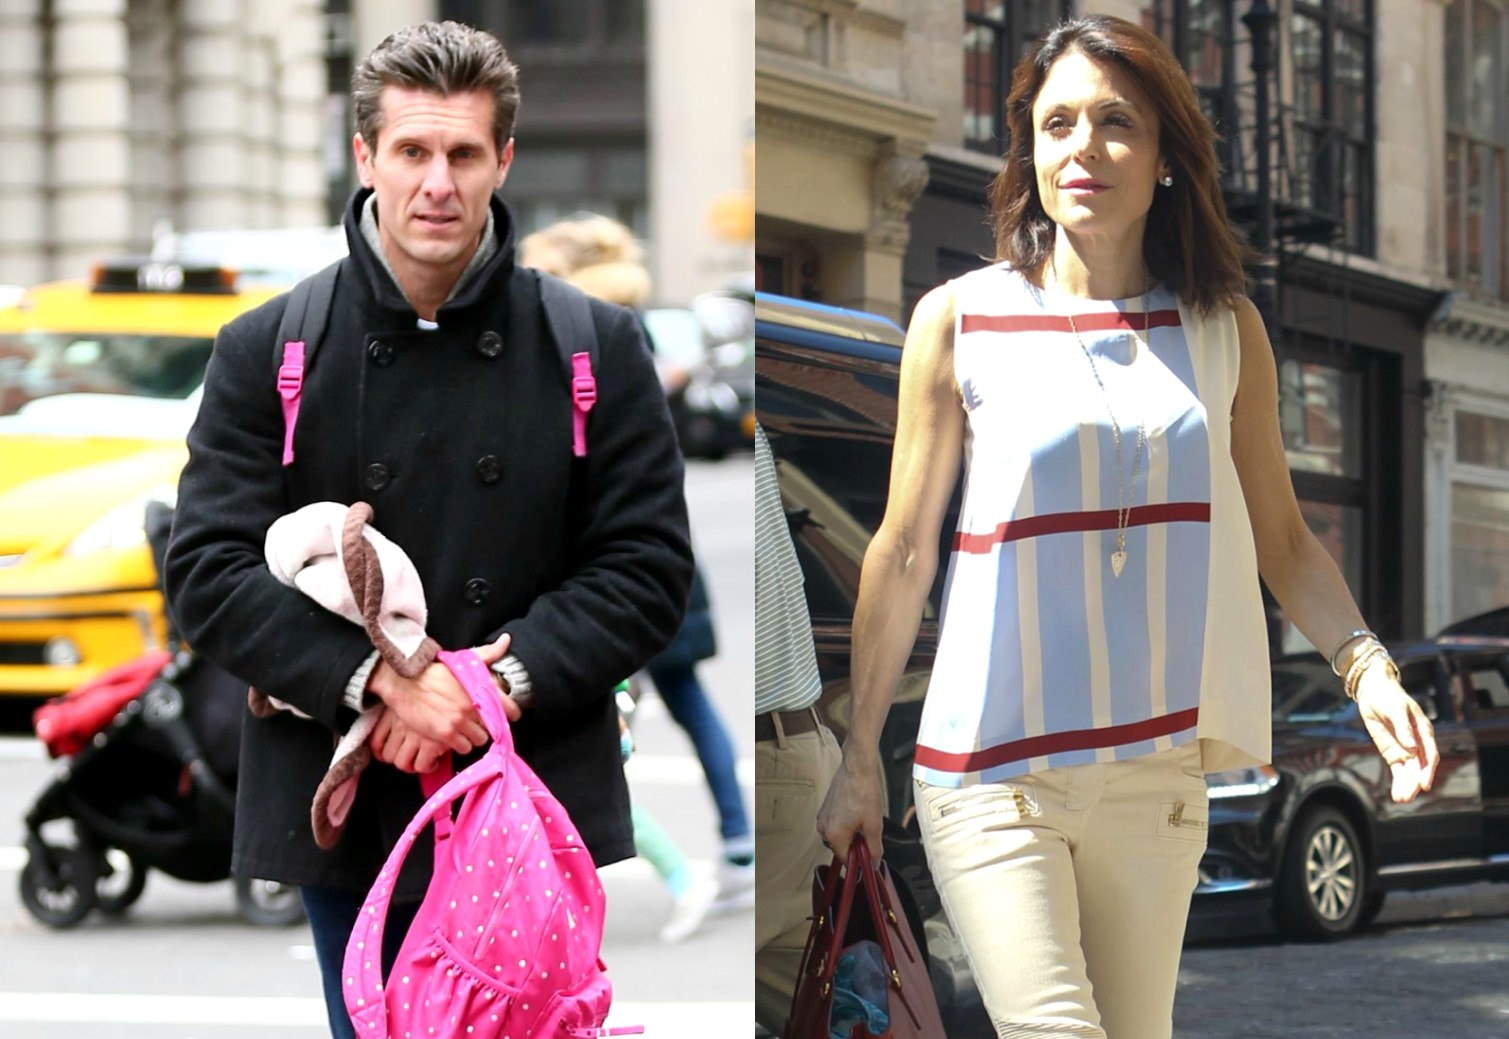 RHONY's Bethenny Frankel & Jason Hoppy's Text Messages Exposed In Court, She Slams Him as a 'Deadbeat'